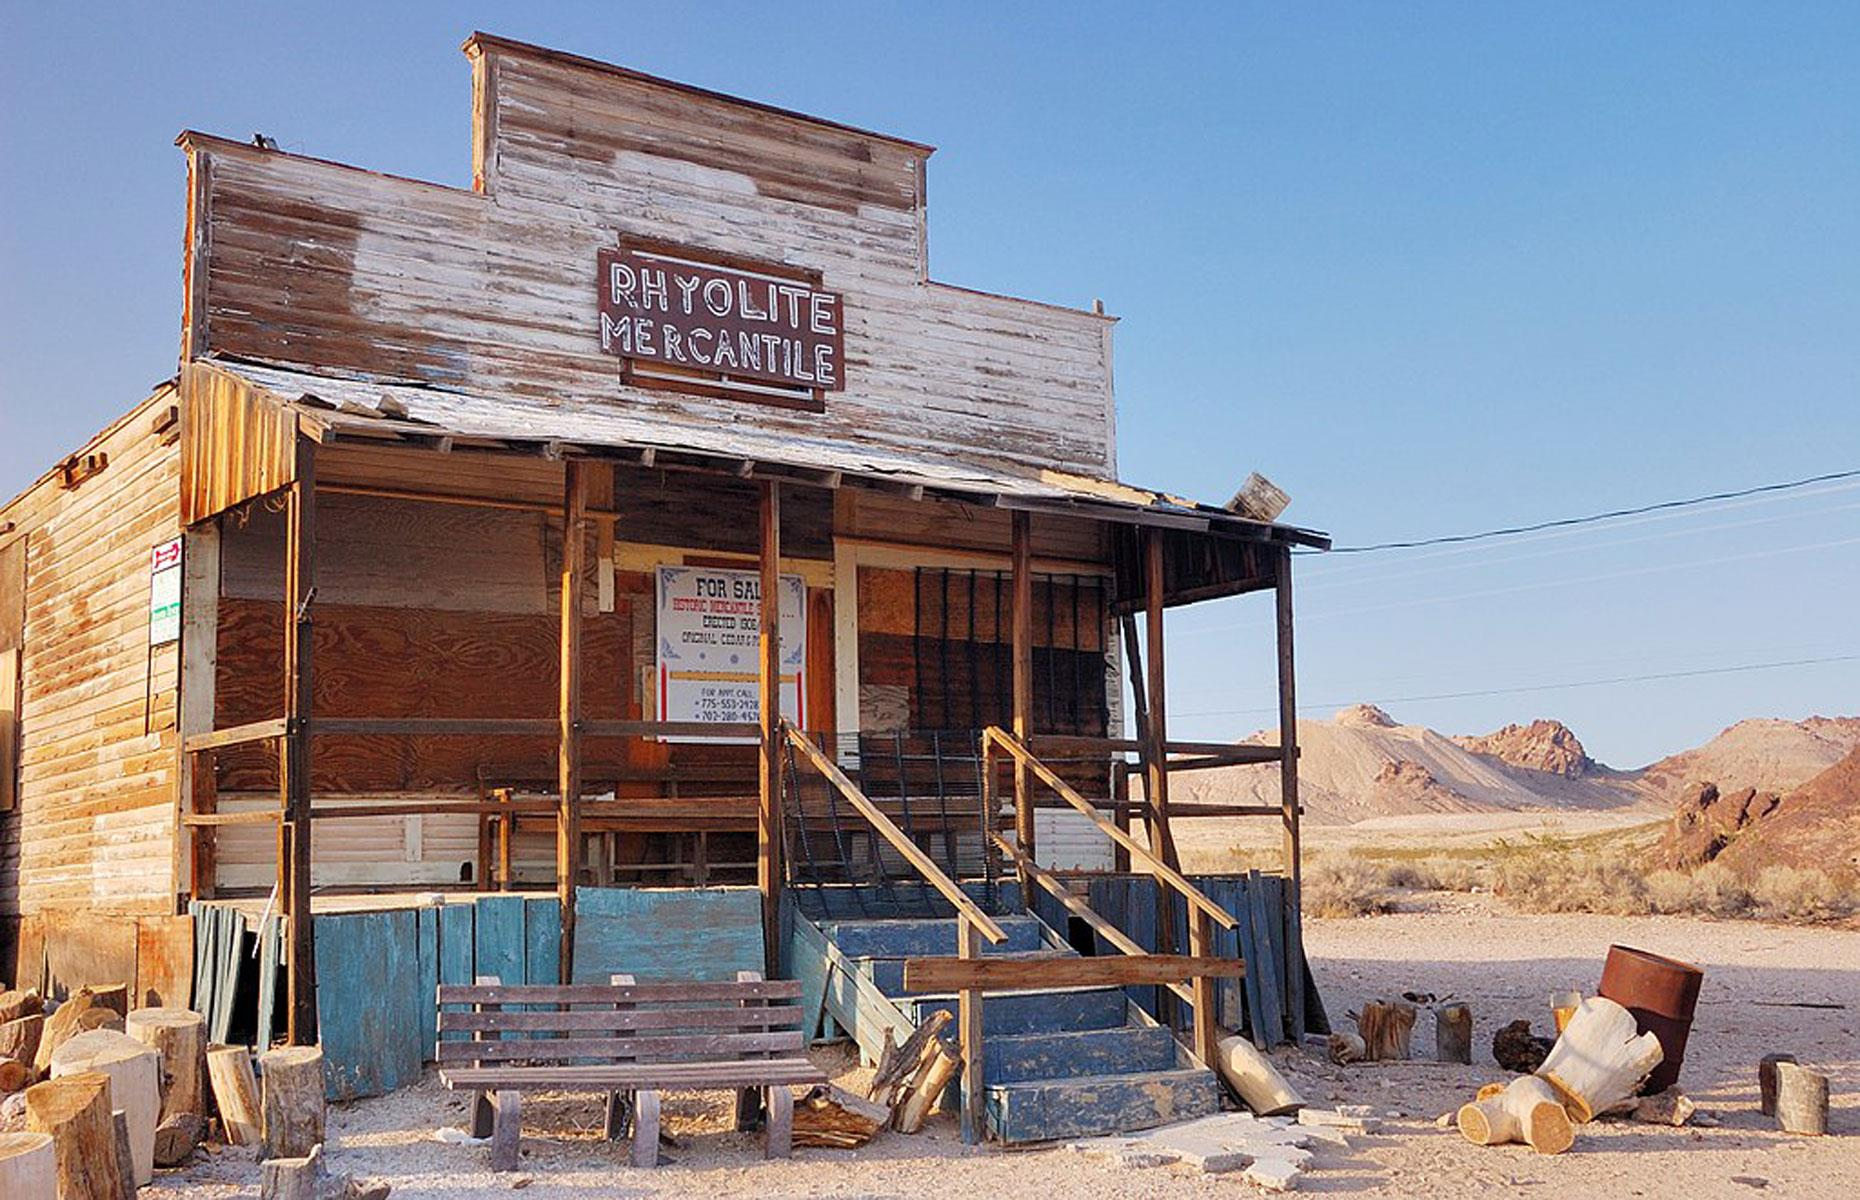 Slide 56 of 101: Nevada isn't short of ghost towns to explore and Rhyolite is one of the largest and most photogenic in the state. The gold mining town was established in 1905 and had amassed a population of 5,000 within a couple of years.